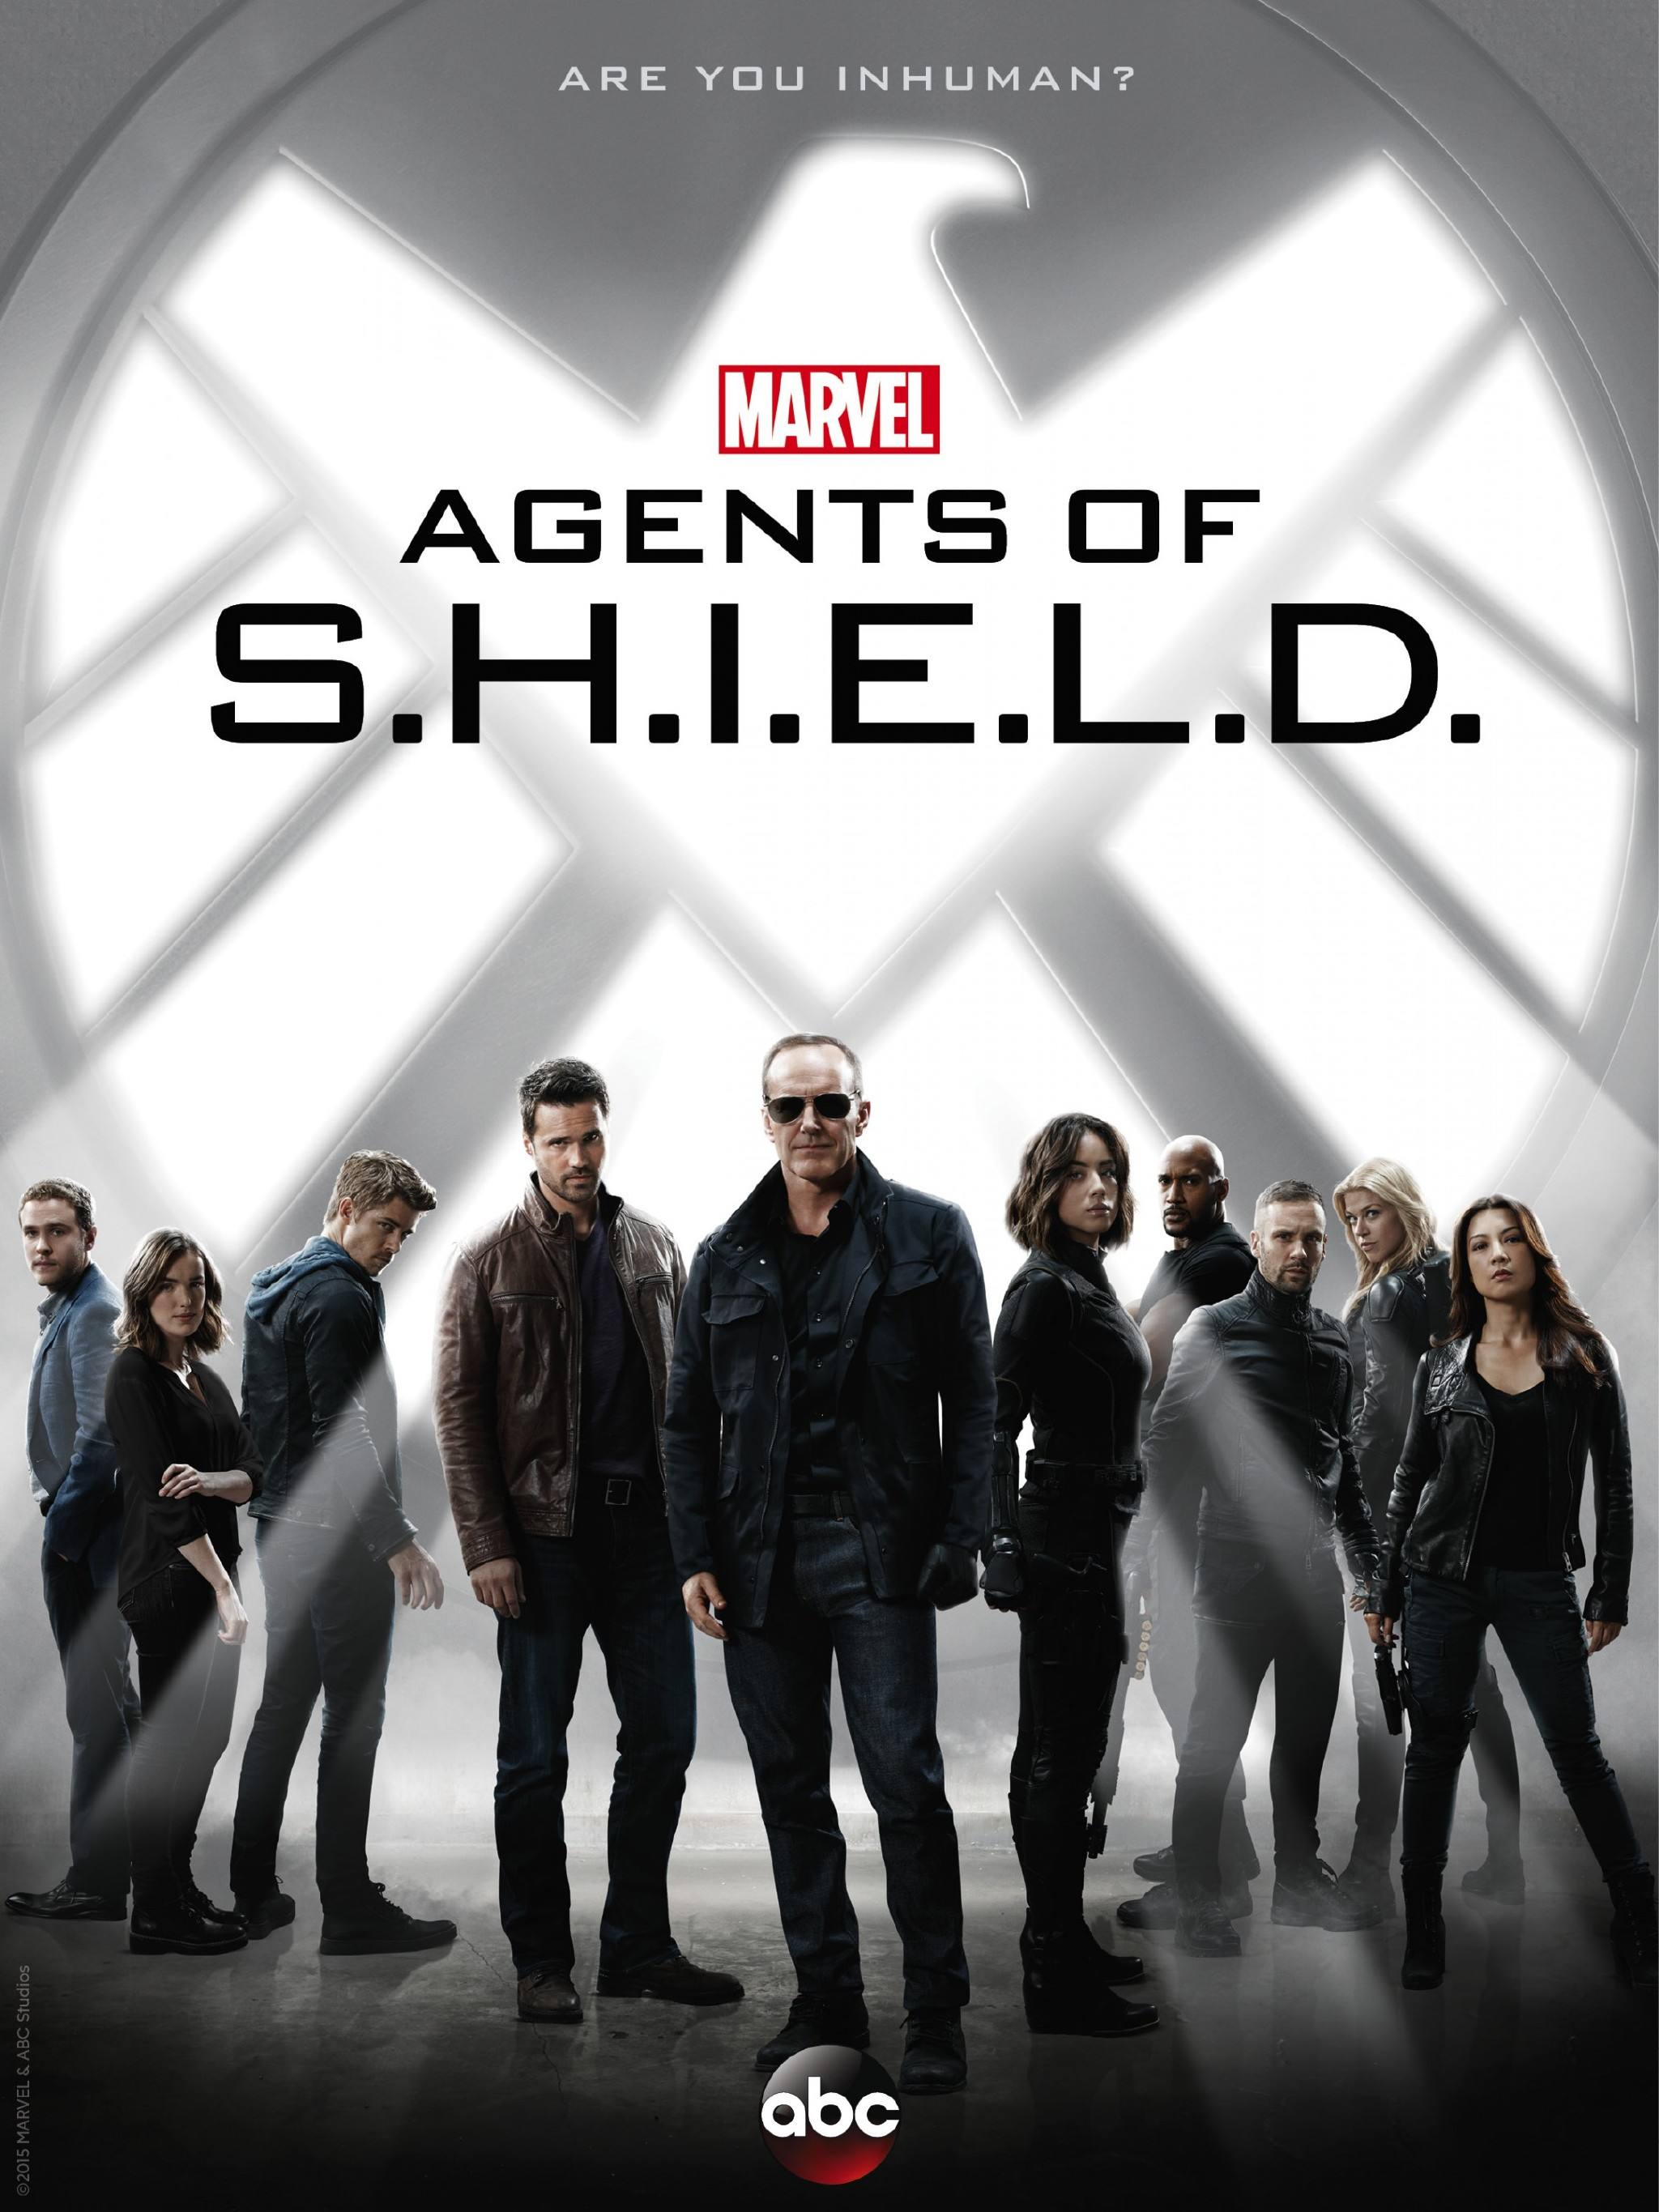 神盾局特工 第六季 神盾局特工 1-5季  完结 Agents of S.H.I.E.L.D. Season 4 (2016)